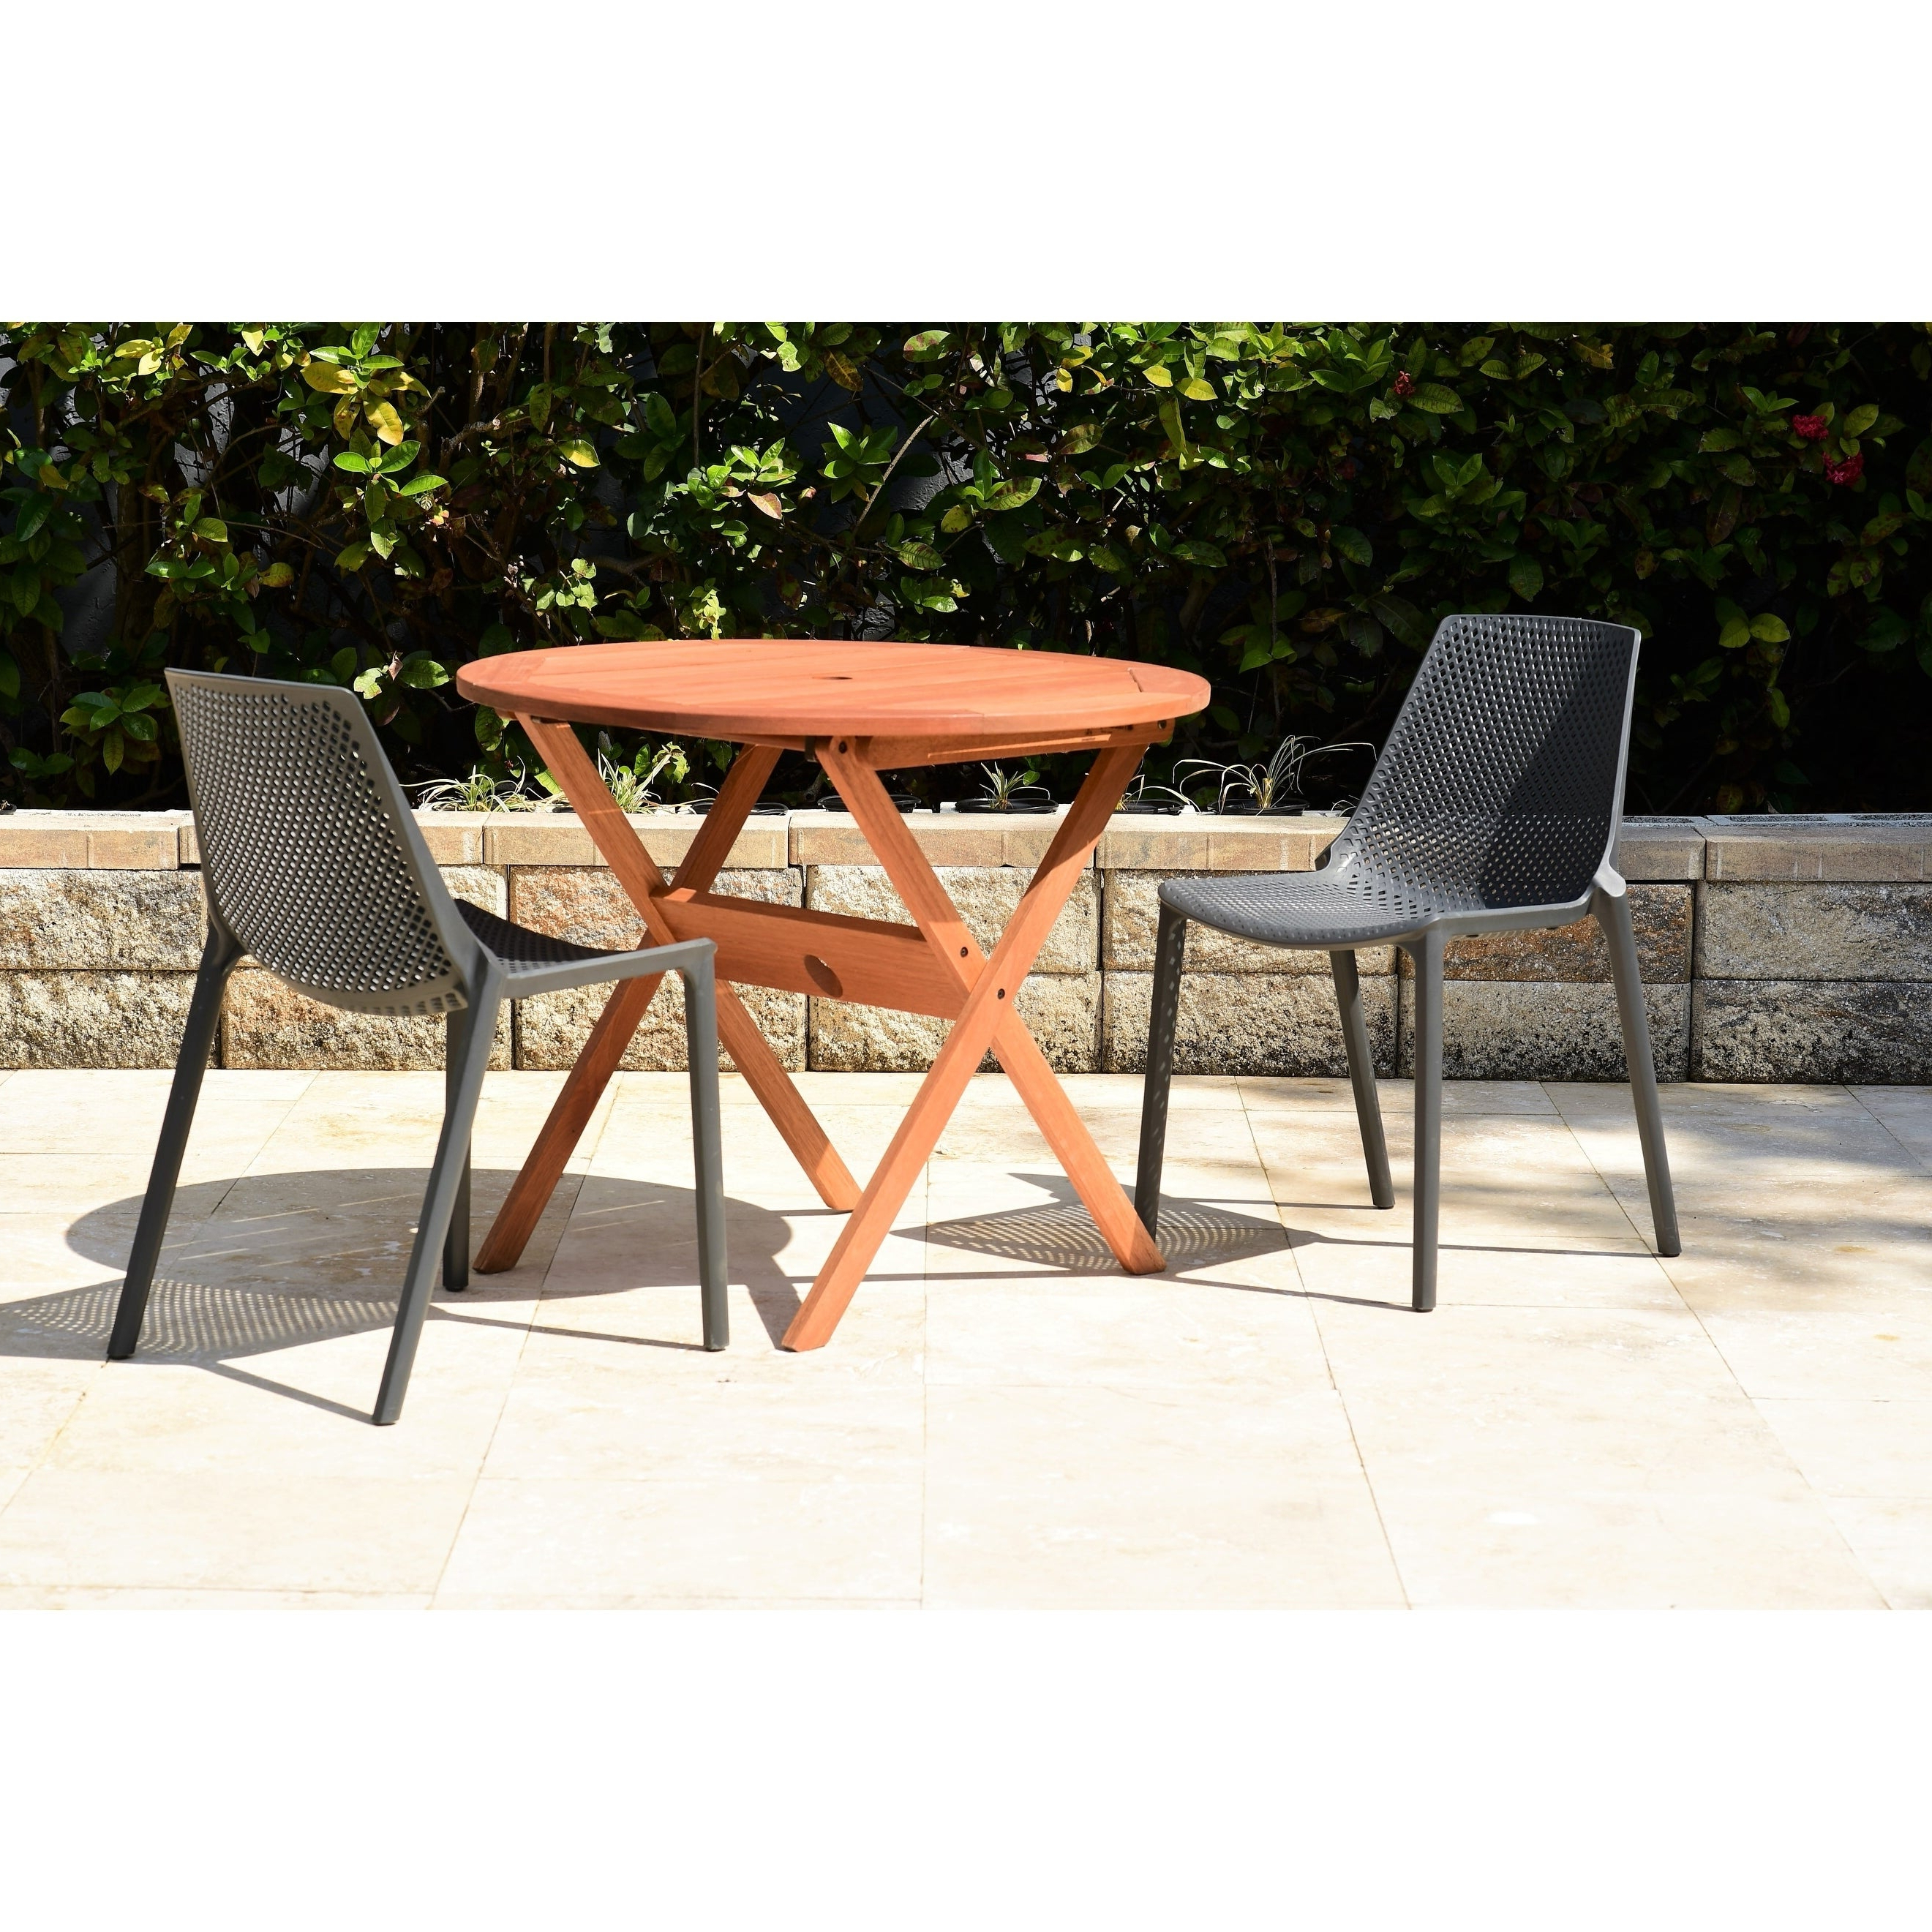 Details About Havenside Home Posorja 3 Piece Round Folding Table Patio Grey Throughout Widely Used Havenside Home Tottenville Eucalyptus Loungers (View 12 of 25)